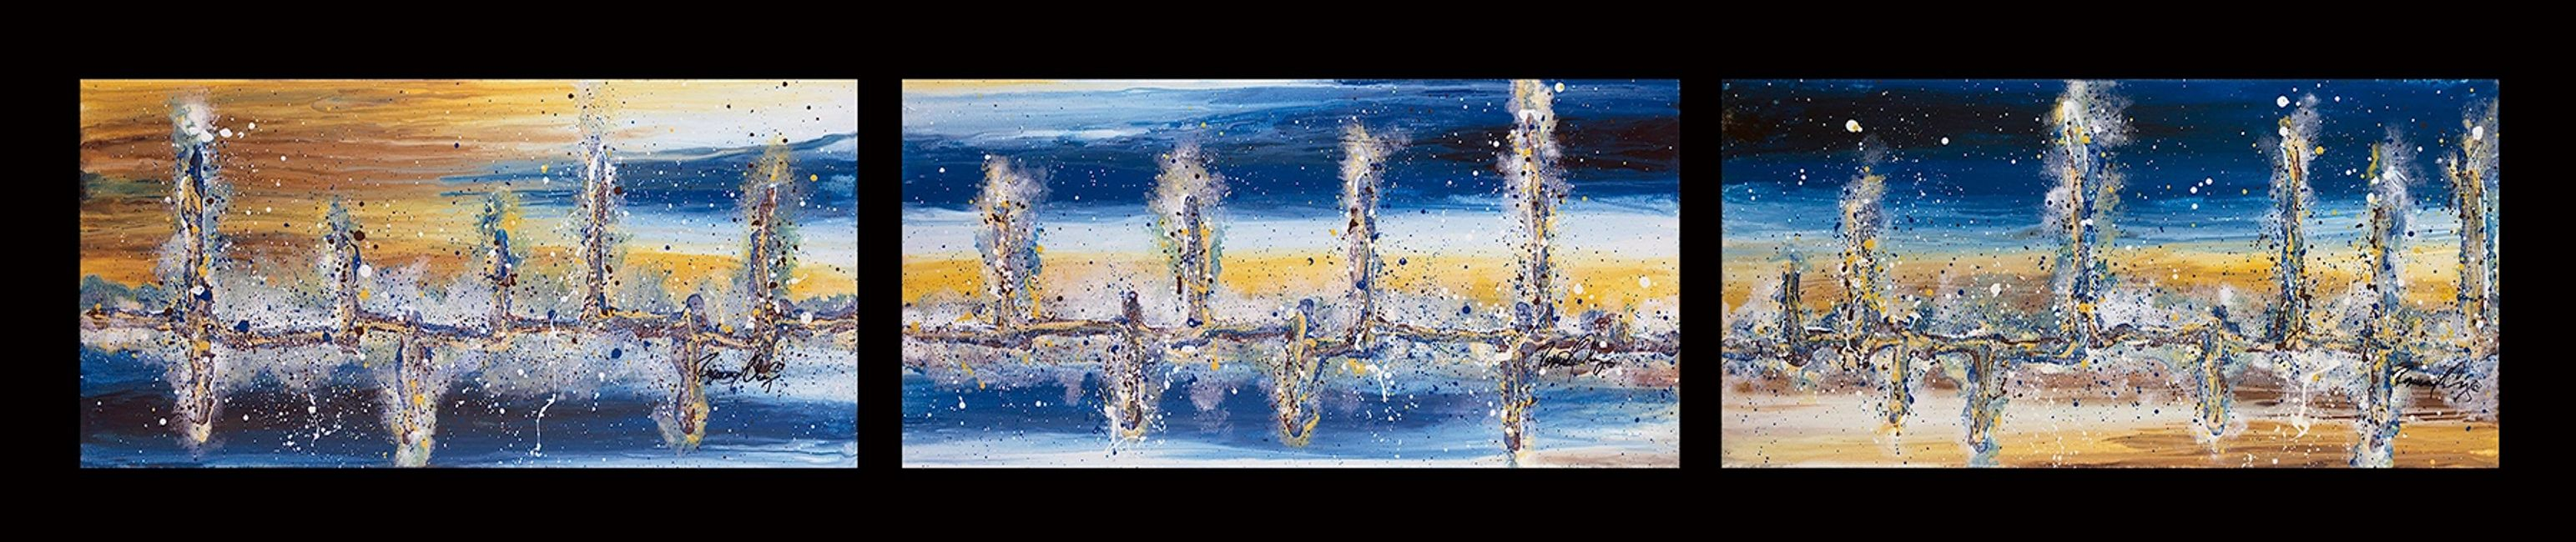 Acrylic abstract artist, Rosemary Craig's triptych, Mercurial